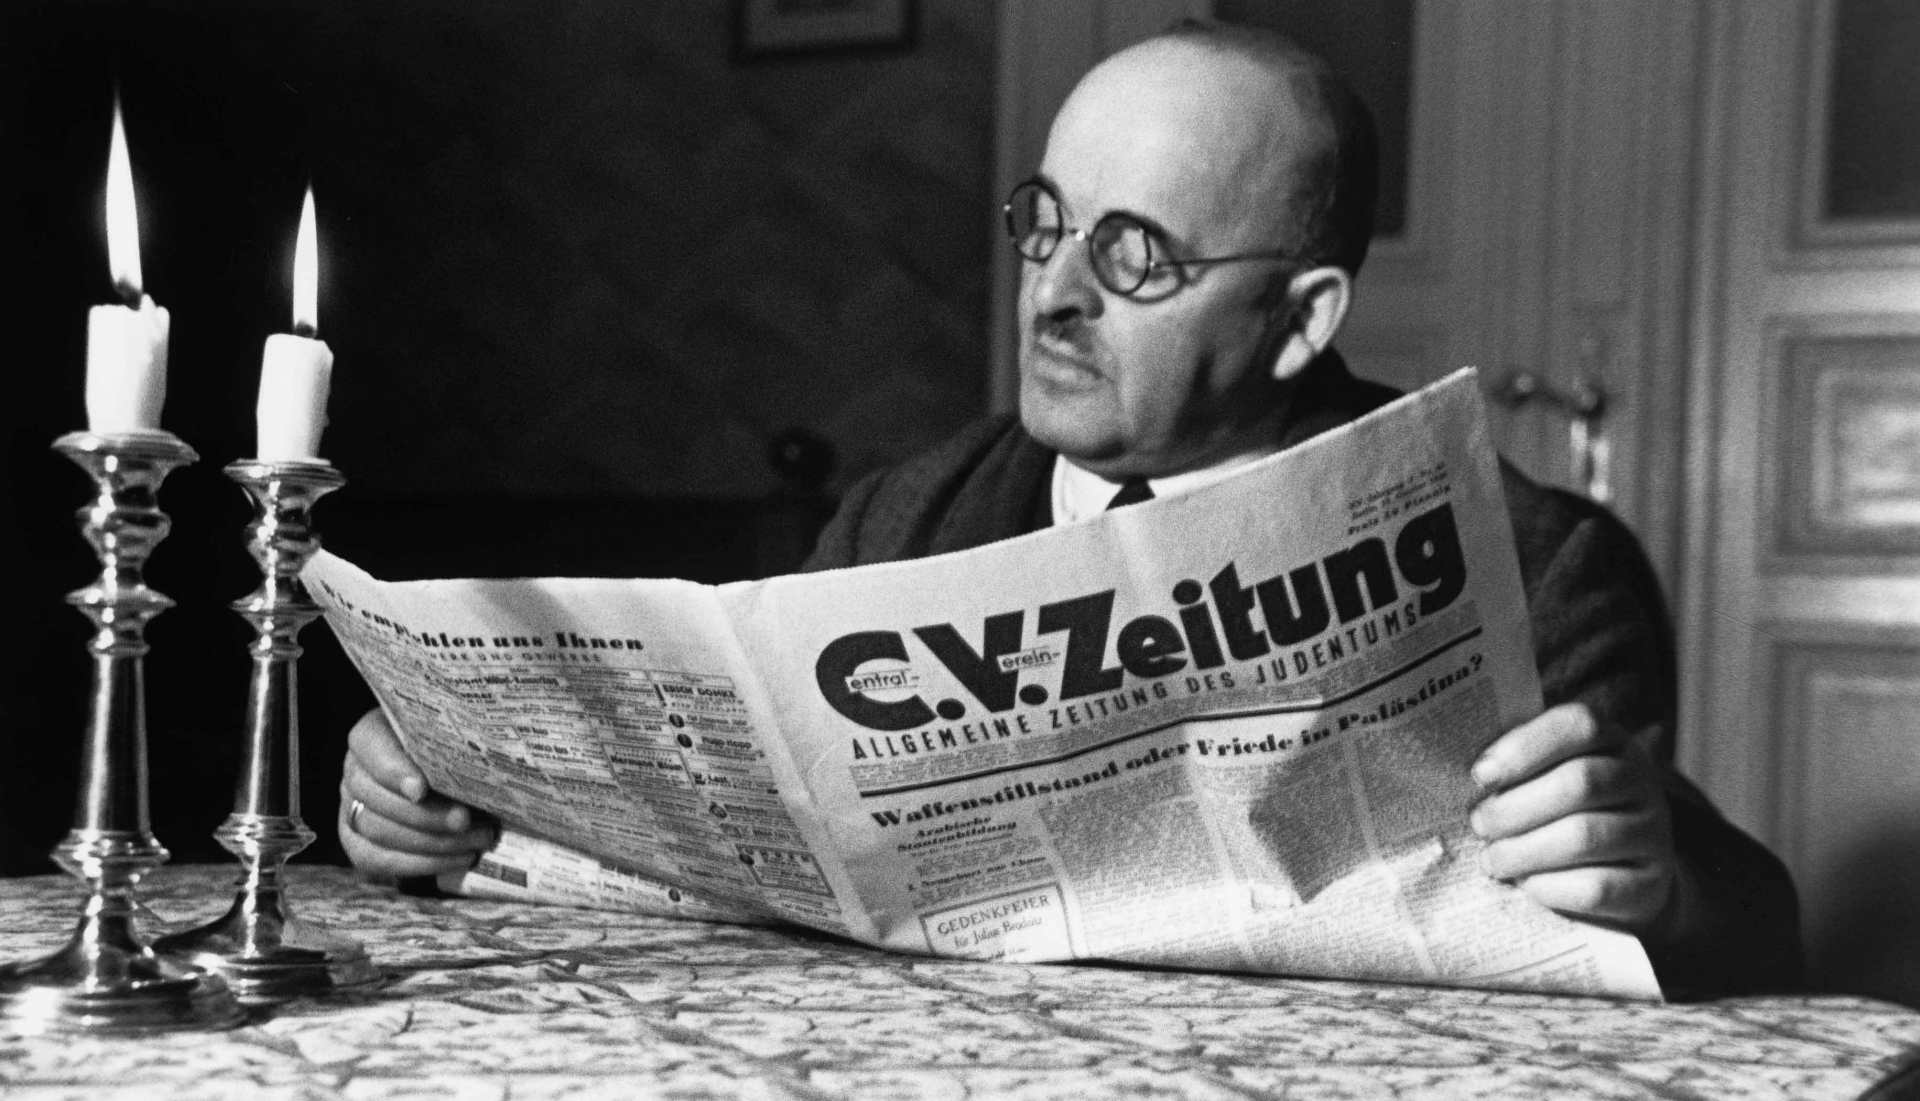 Black and white photo by Herbert Sonnenfeld: A man sitting at a table with two burning Shabbat candles and reading the C.V. newspaper